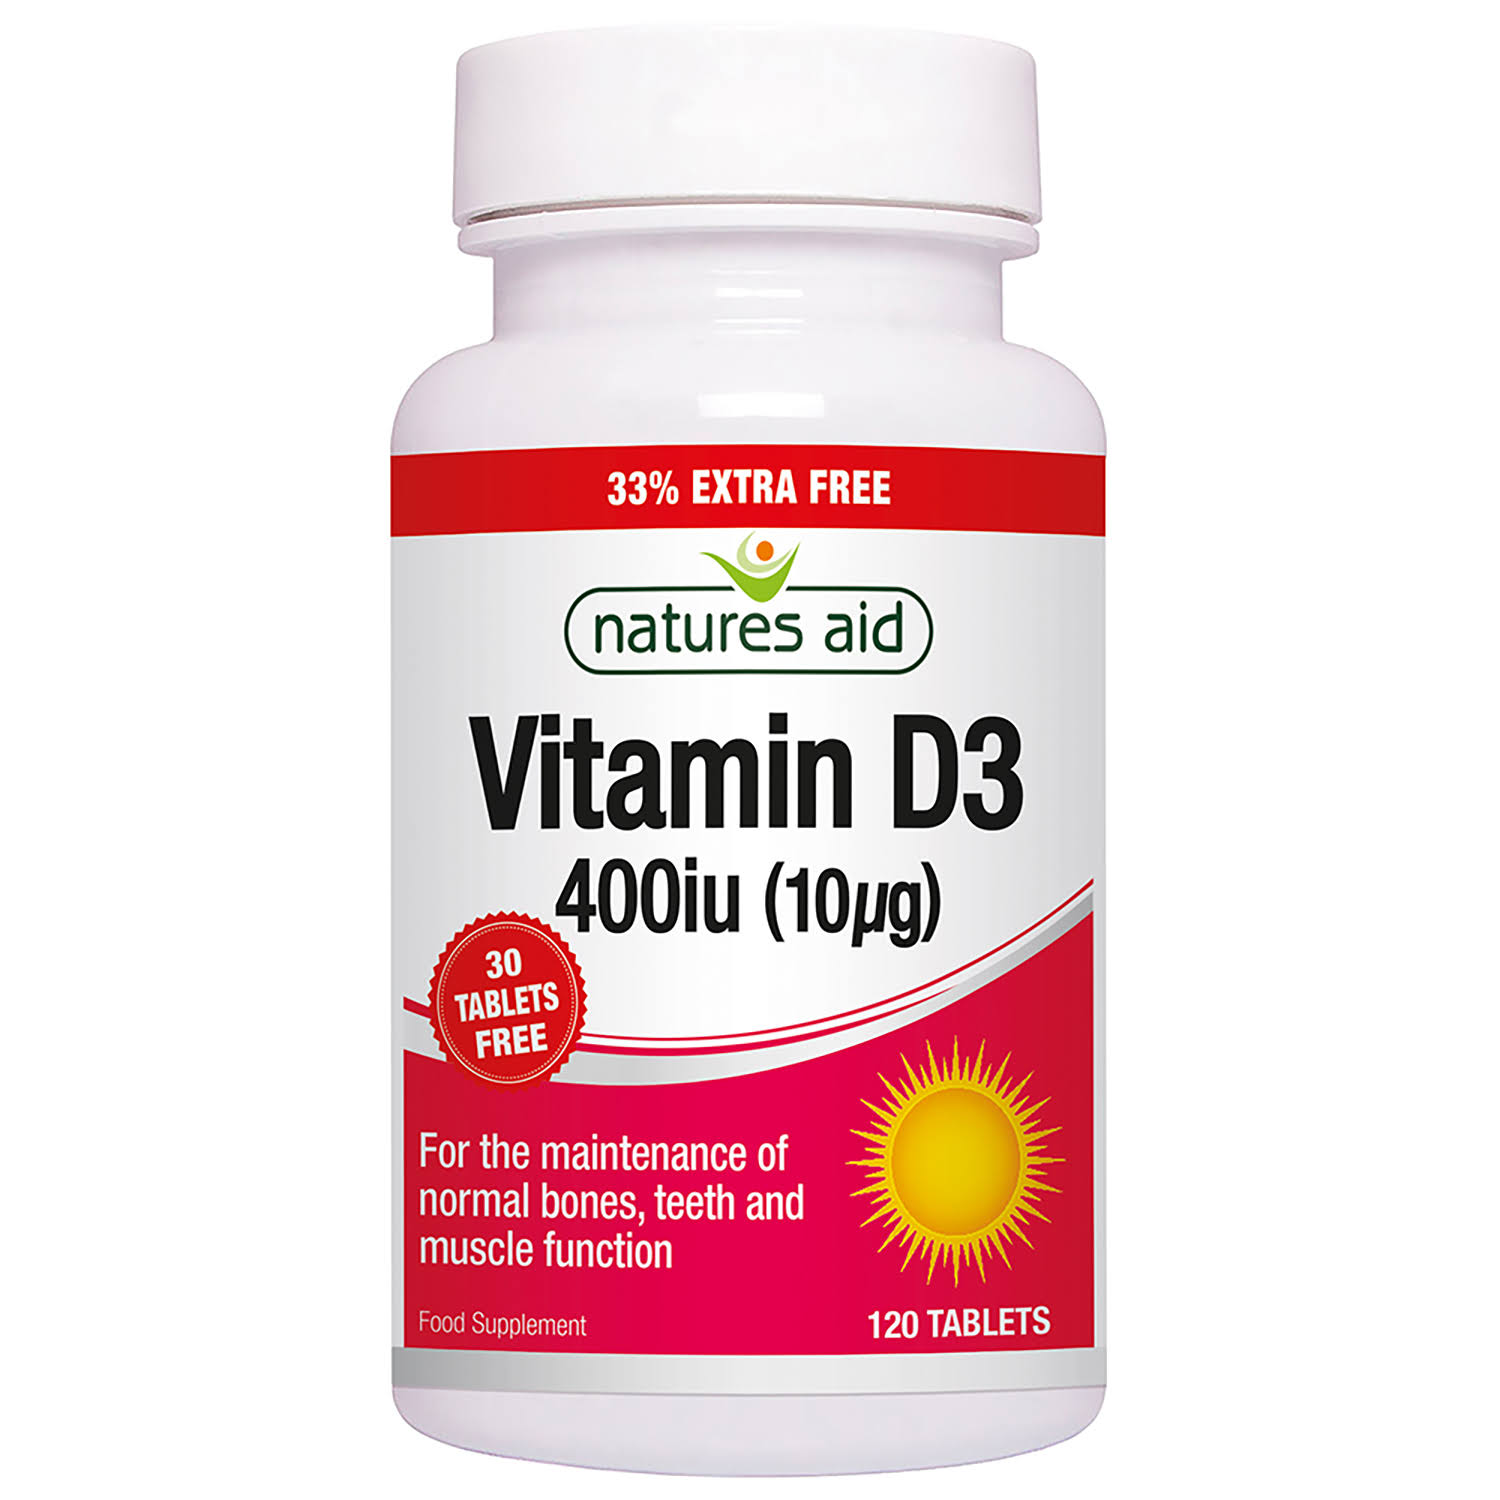 Nature's Aid Vitamin D3 400iu (10ug) Tablets 120